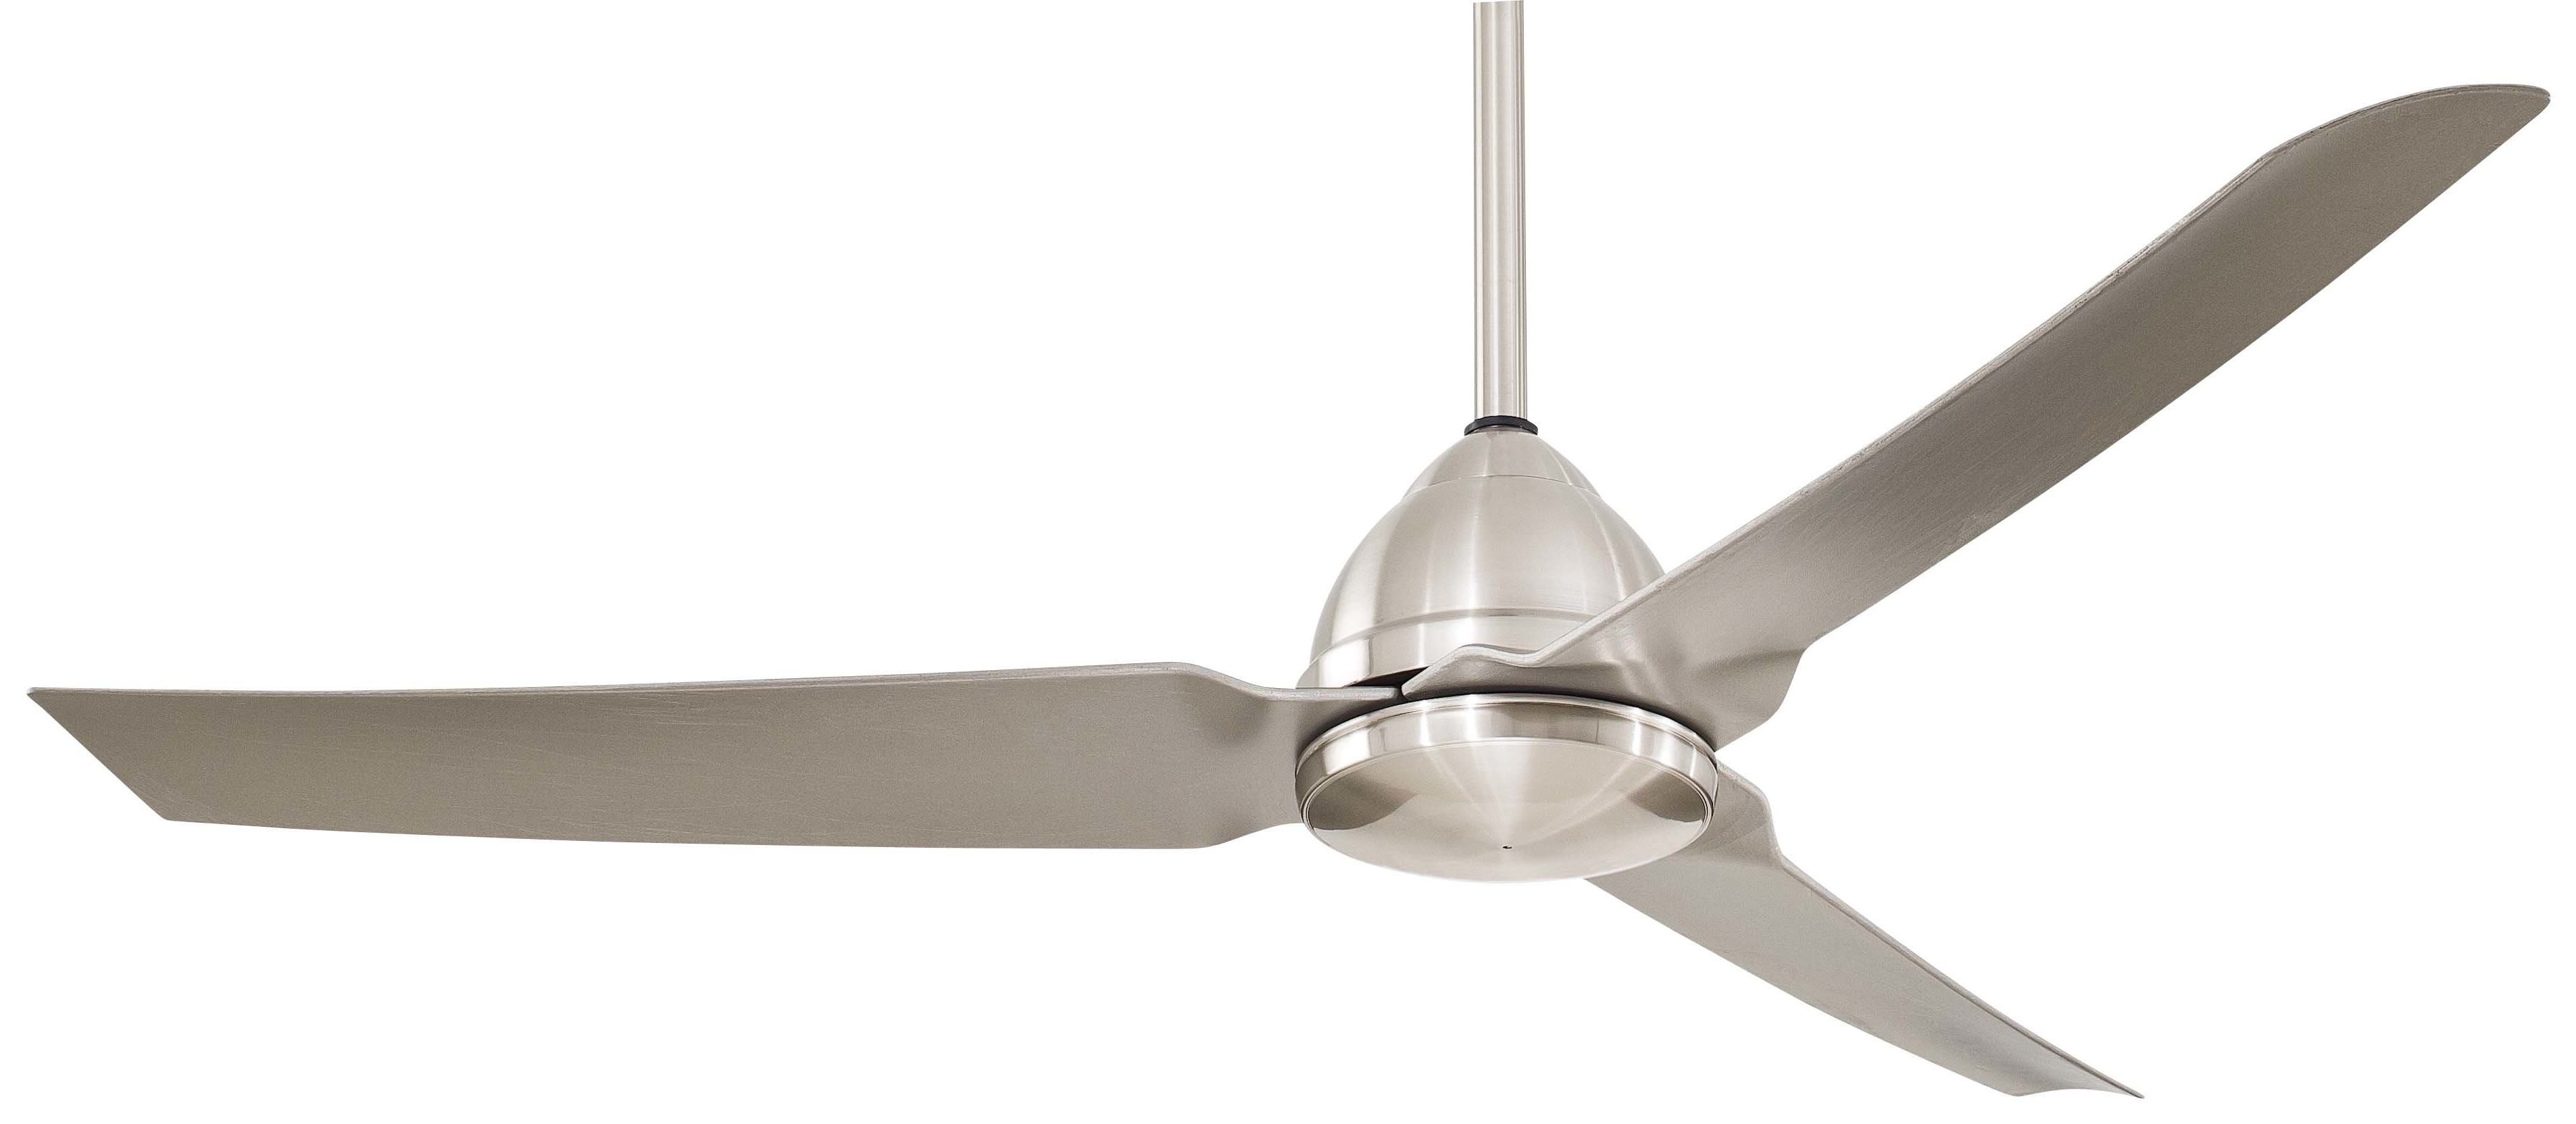 Wayfair With Regard To High Volume Outdoor Ceiling Fans (View 16 of 20)